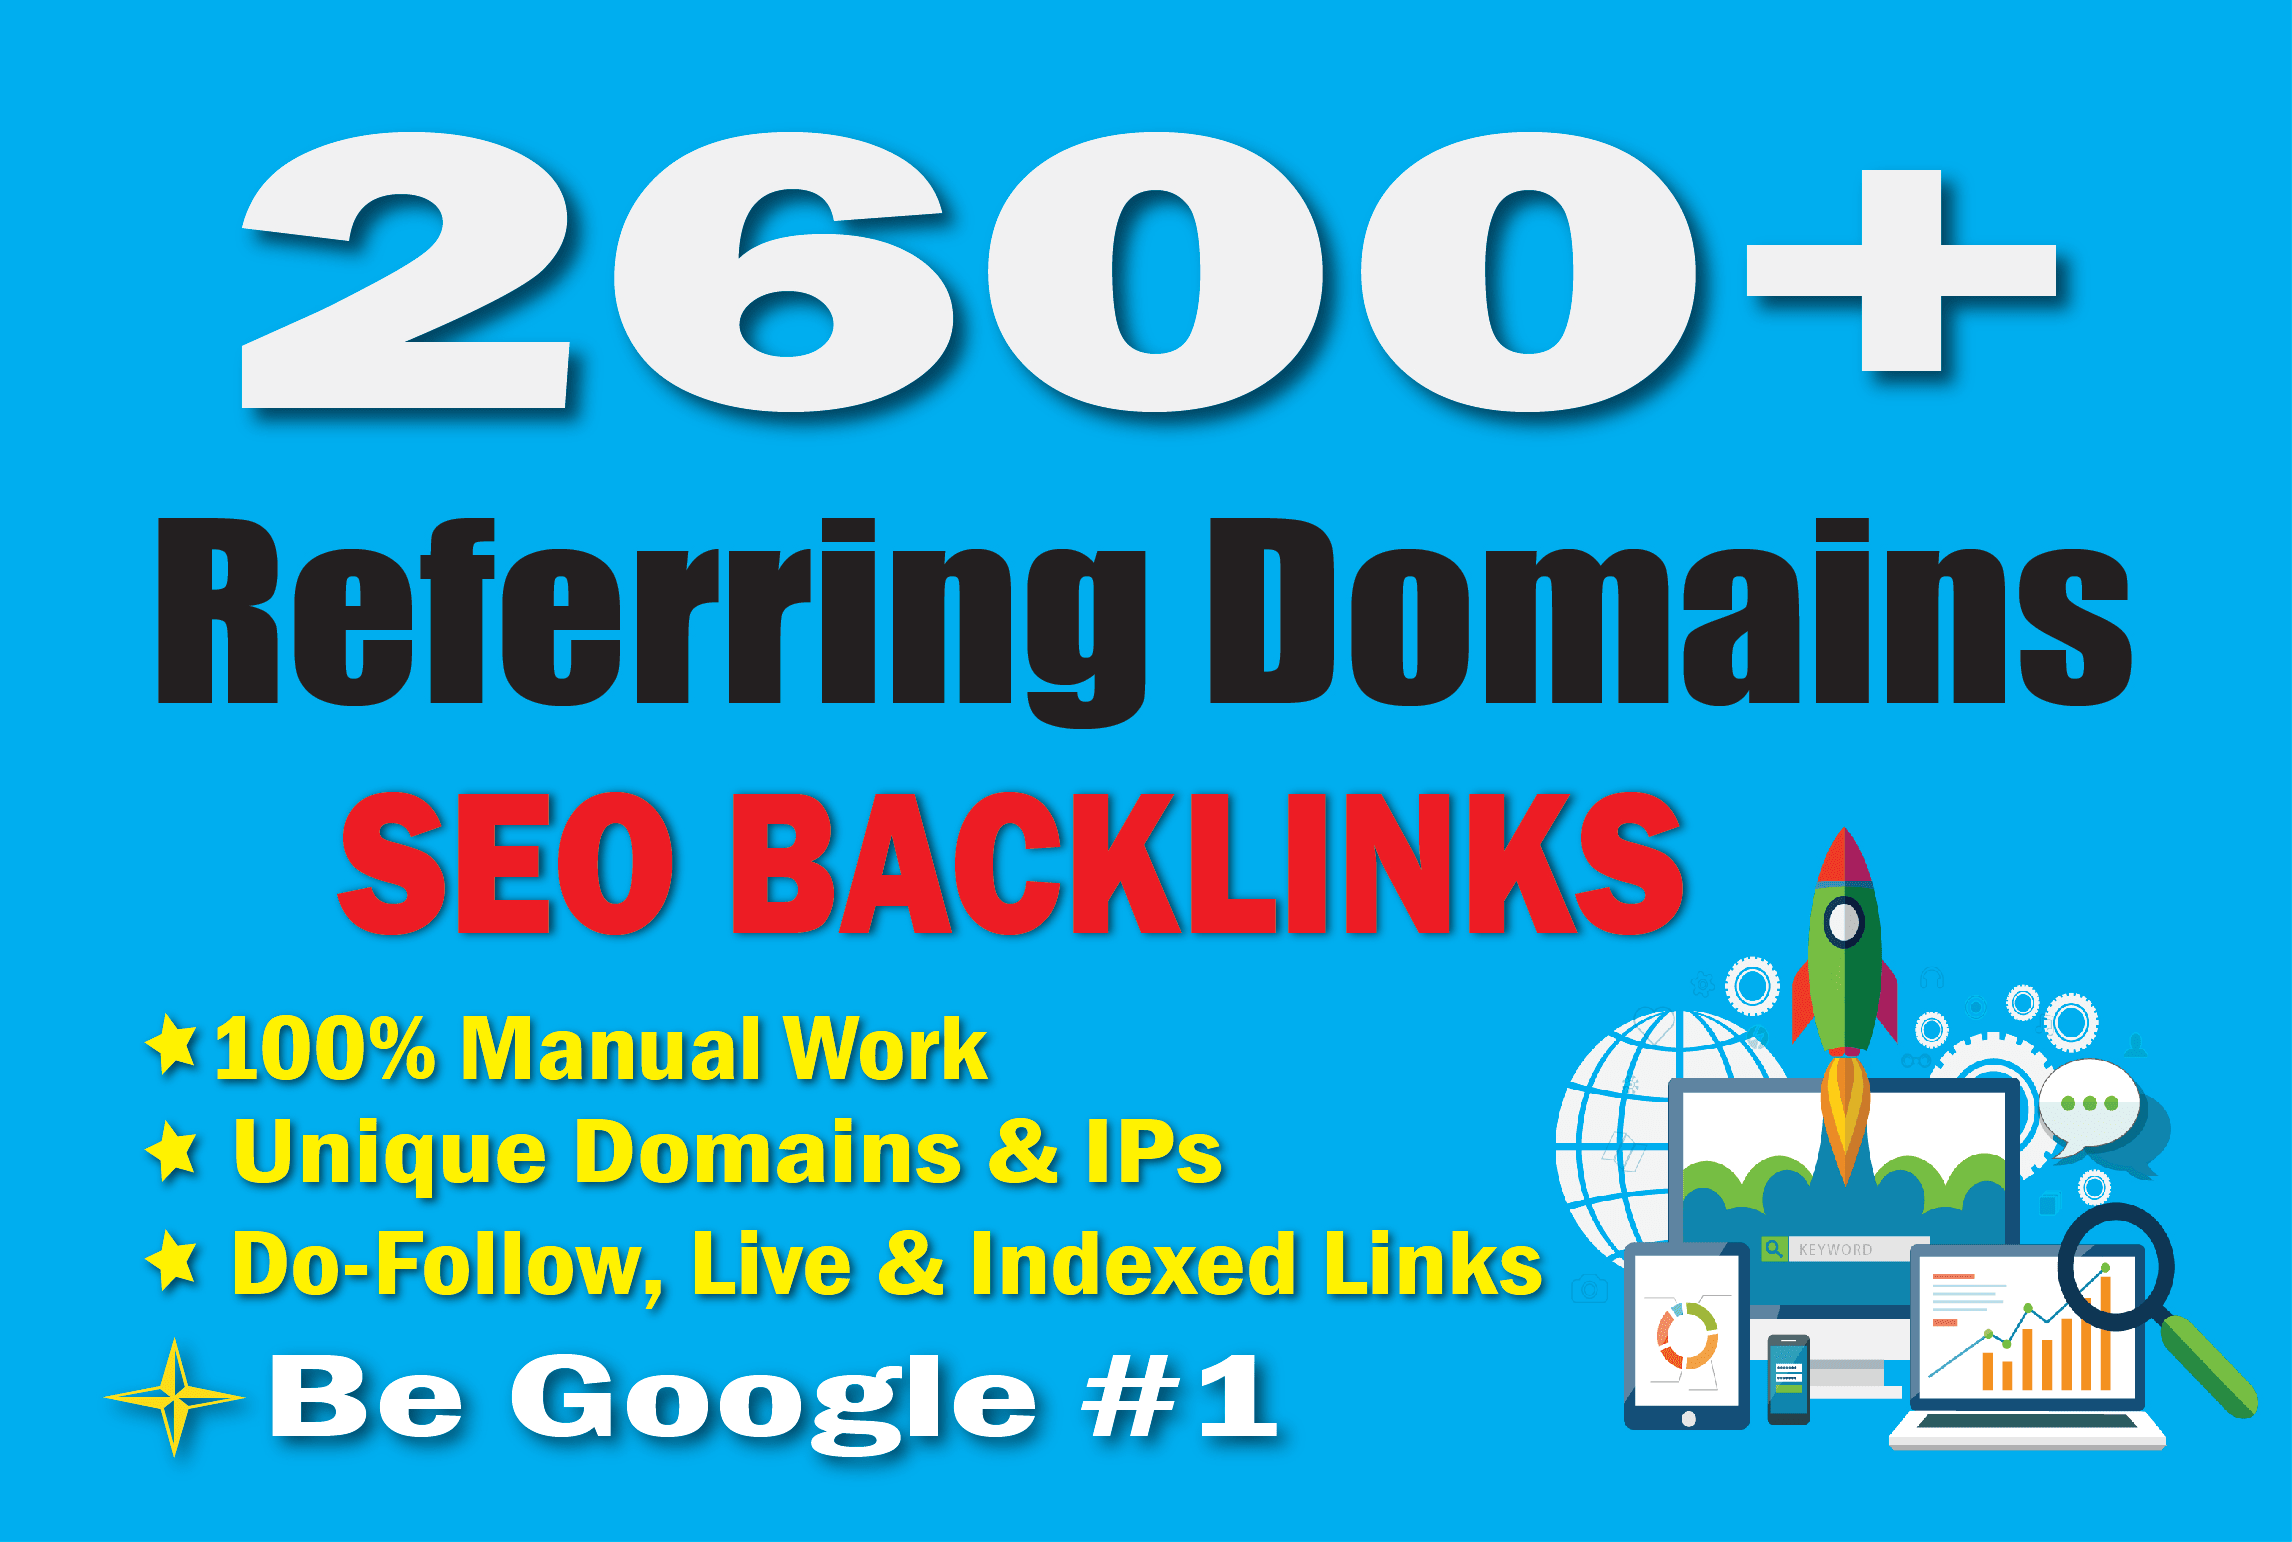 I will build referring domains SEO backlinks for website ranking and Top Google 1